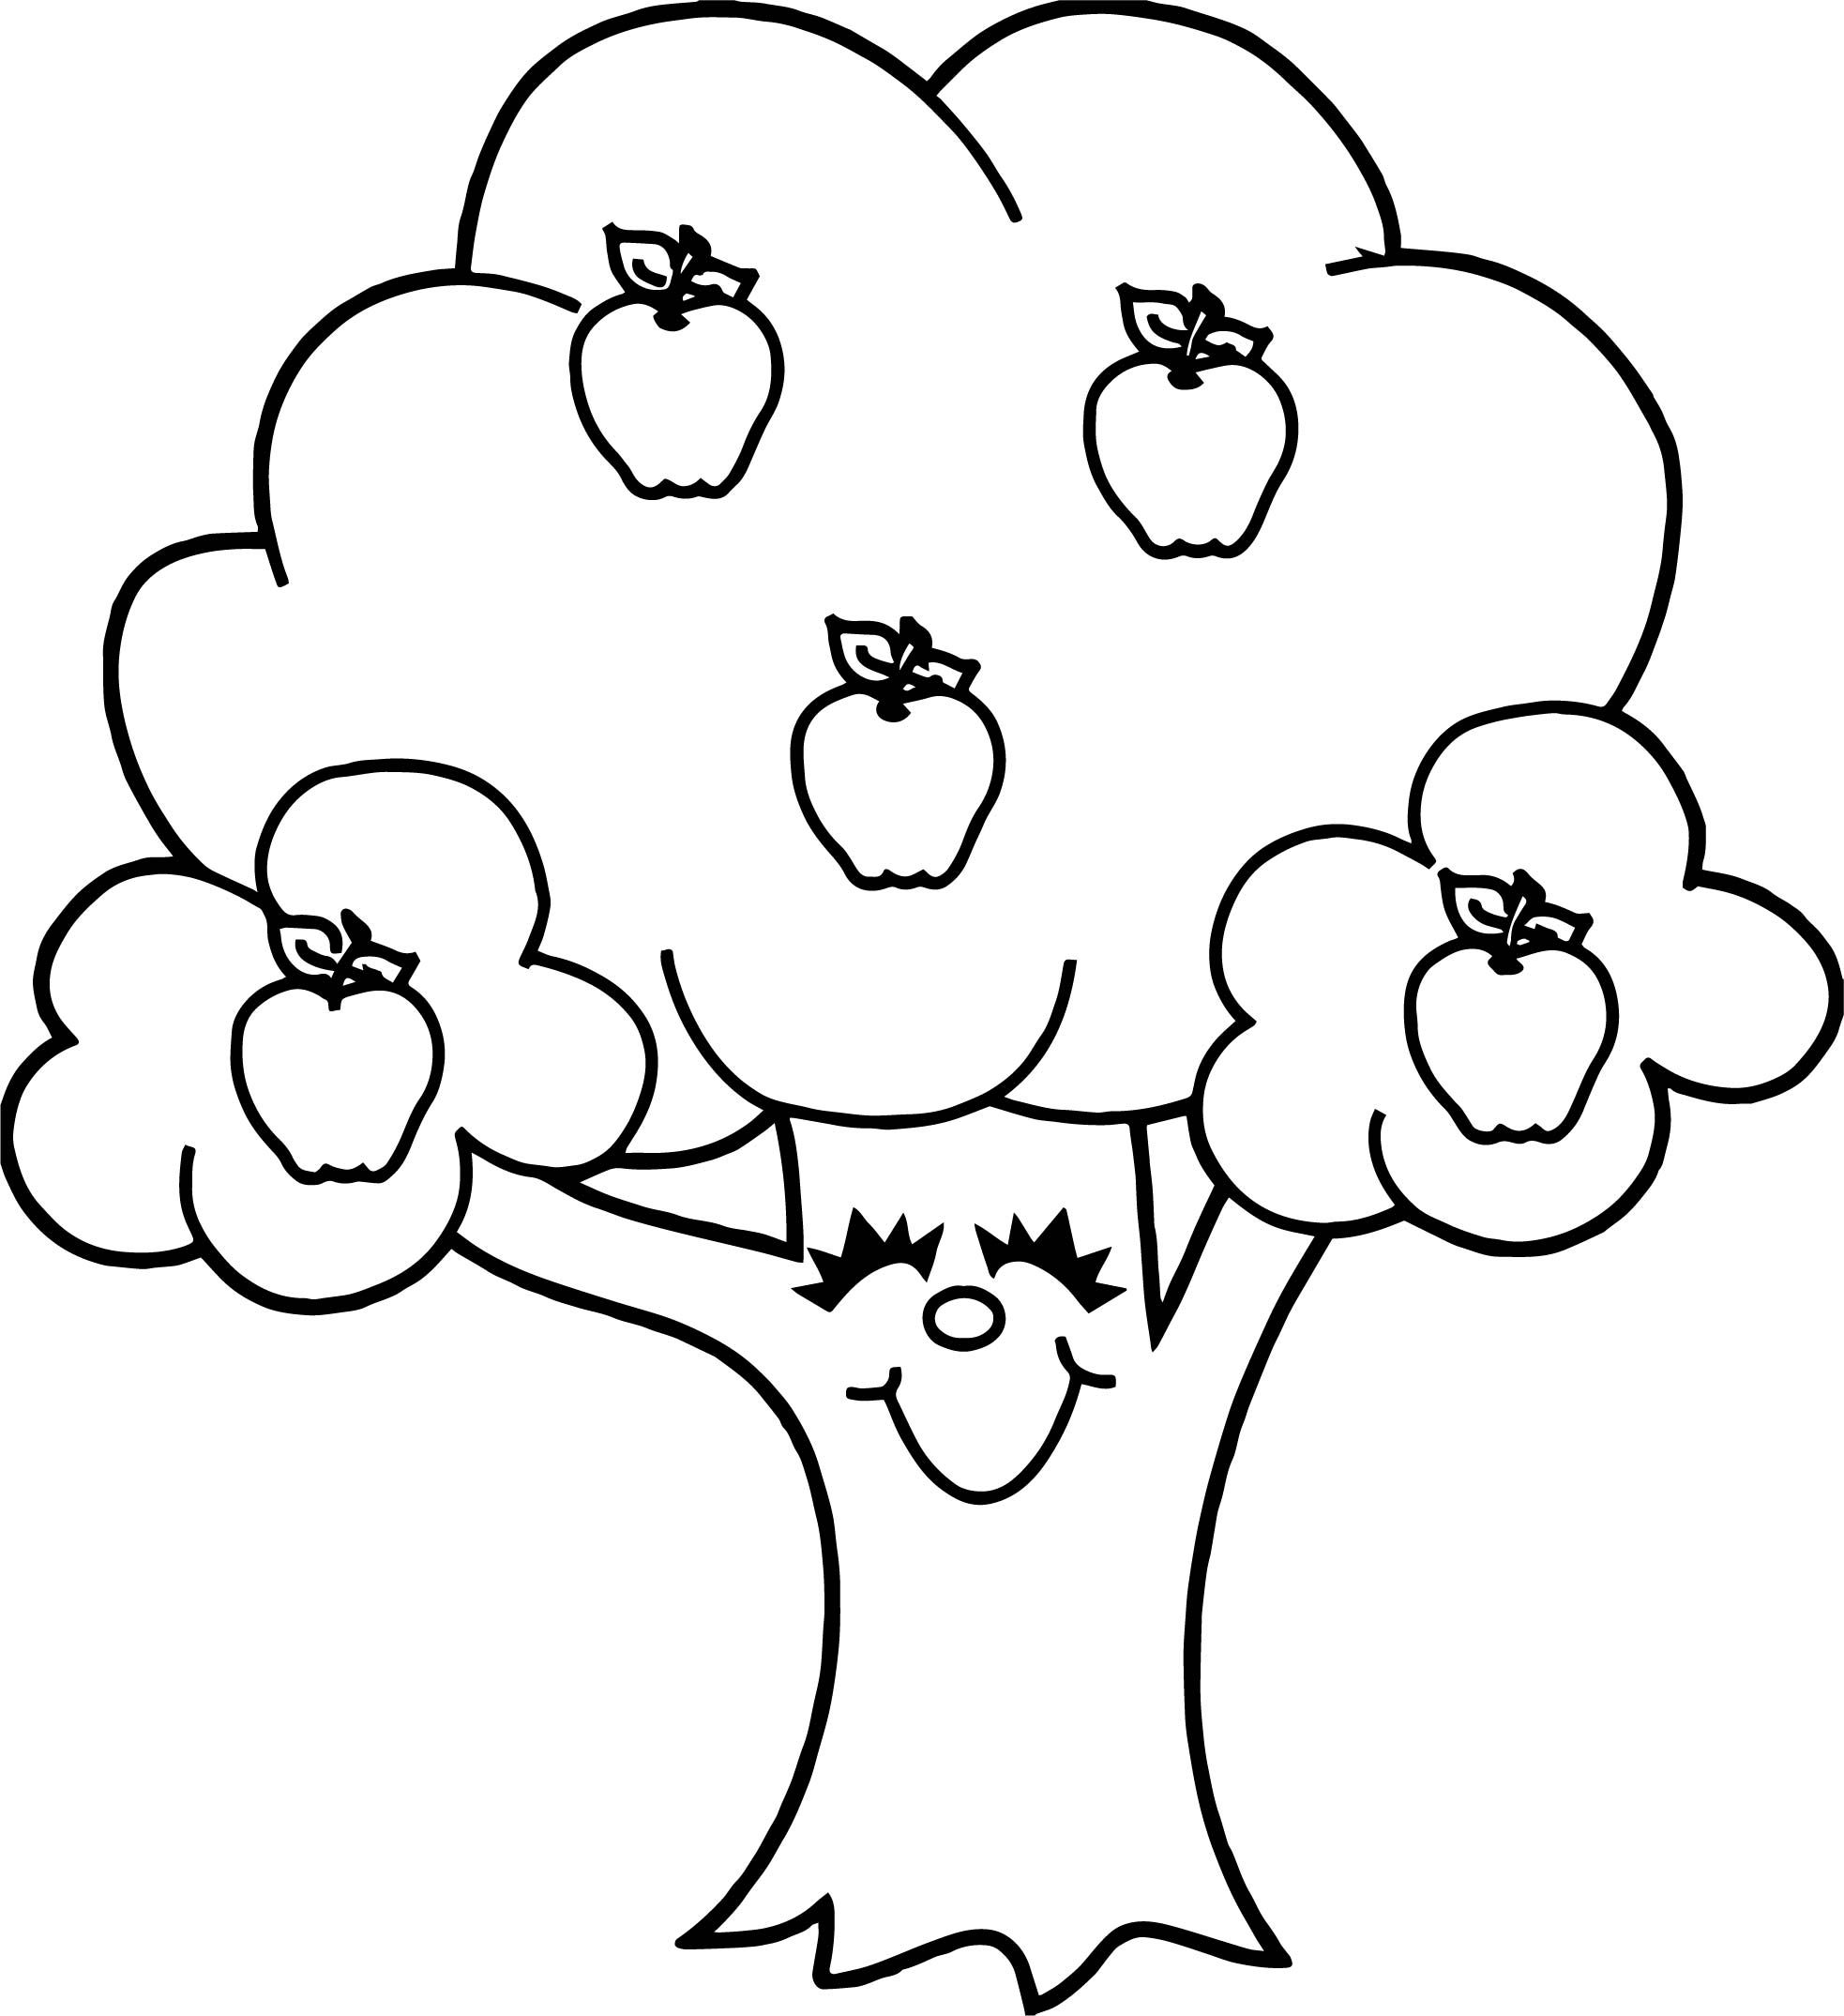 Awesome Funny Apple Tree Coloring Page